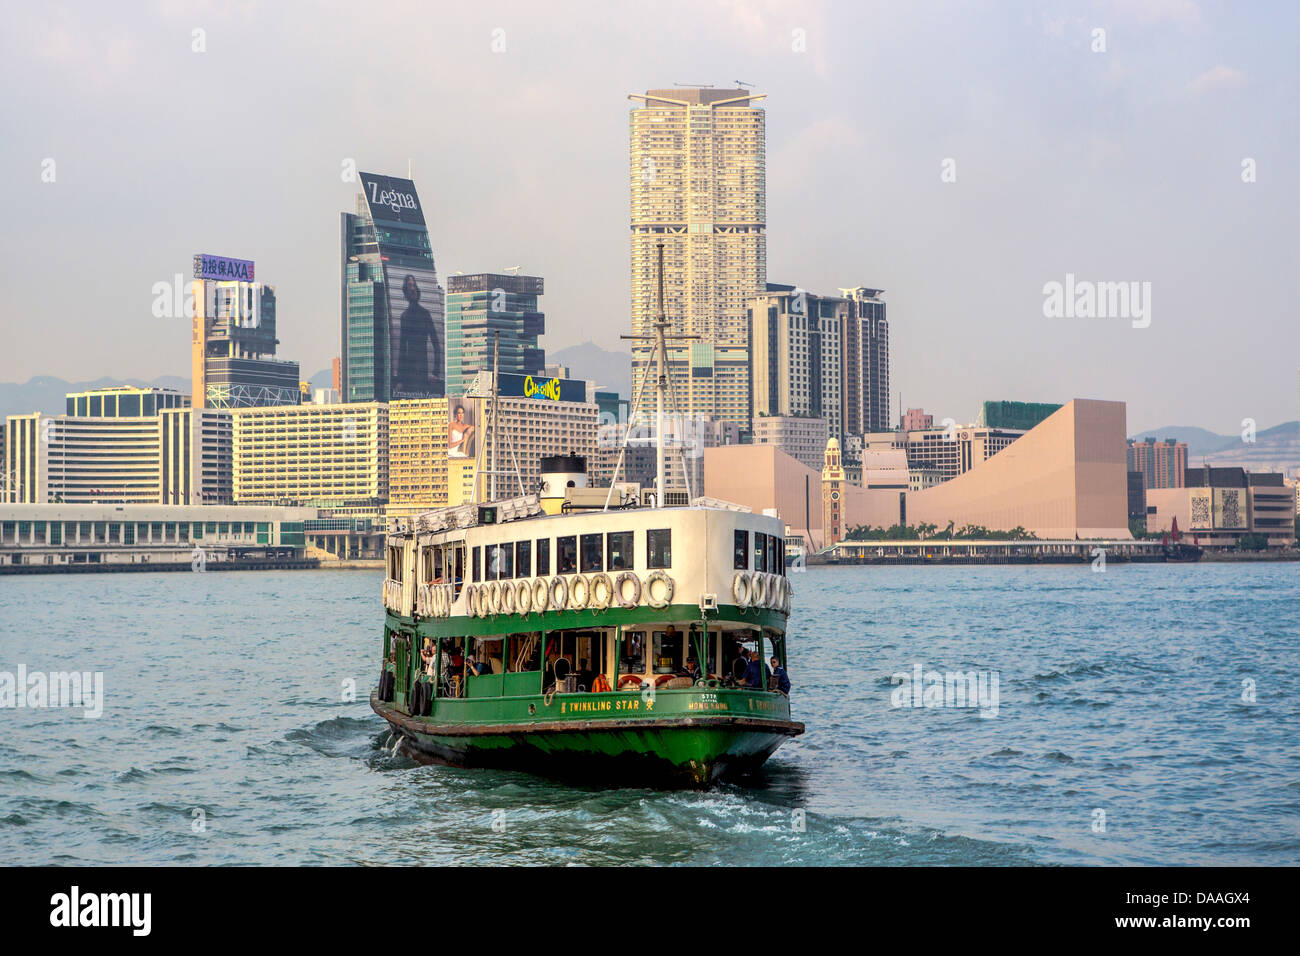 Hong Kong, China, Asia, City, Kowloon, District, Star Ferry, architecture, ferry, skyline, skyscrapers, boat - Stock Image